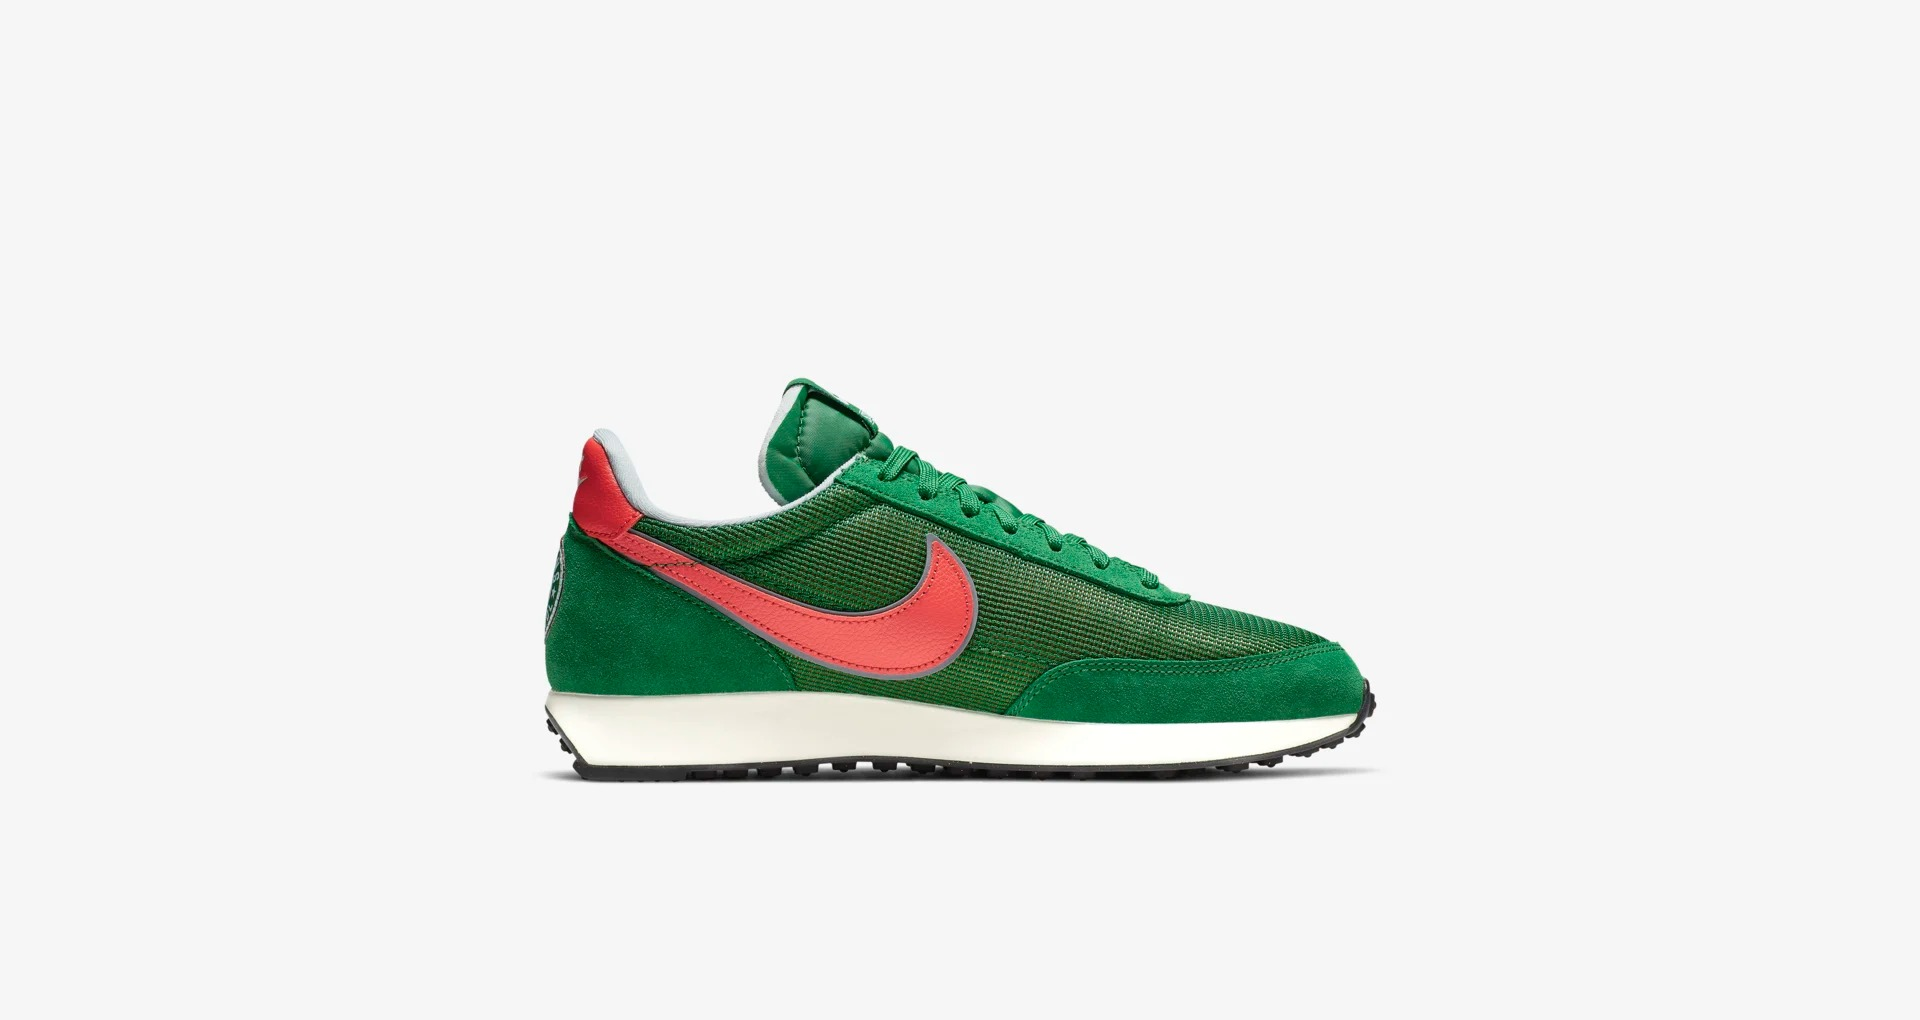 CJ6108 300 Stranger Things x Nike Air Tailwind 2